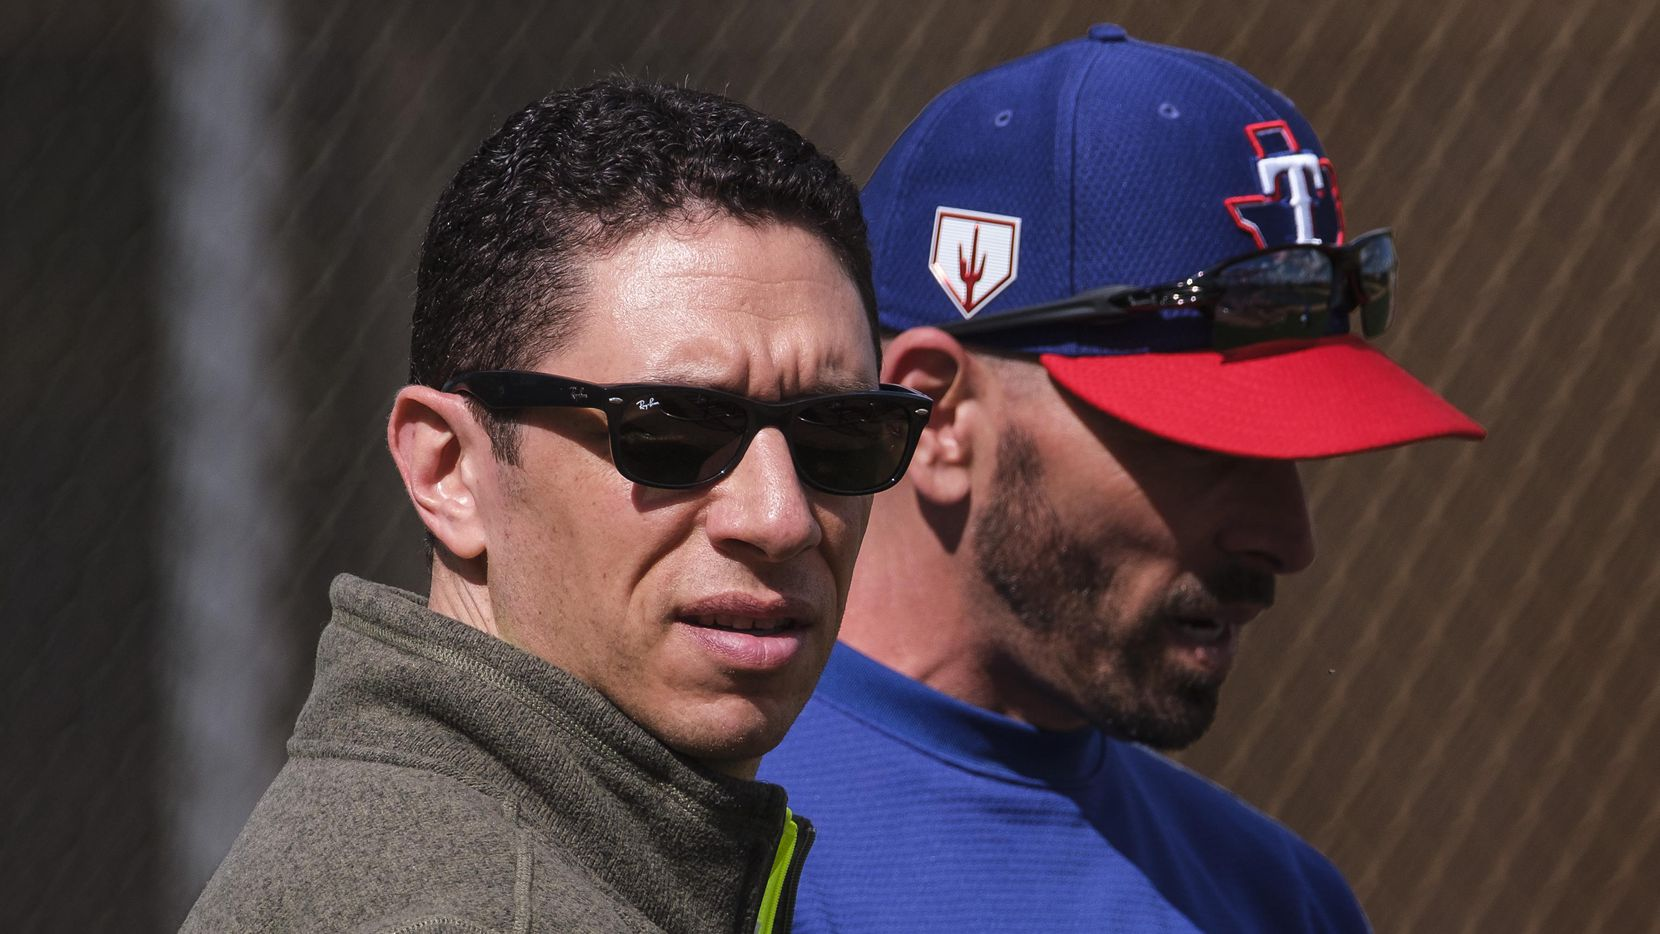 FILE - Rangers GM Jon Daniels (left) and manager Chris Woodward watch batting practice during the first full-squad spring training workout at the team's training facility on Monday, Feb. 18, 2019, in Surprise, Ariz.